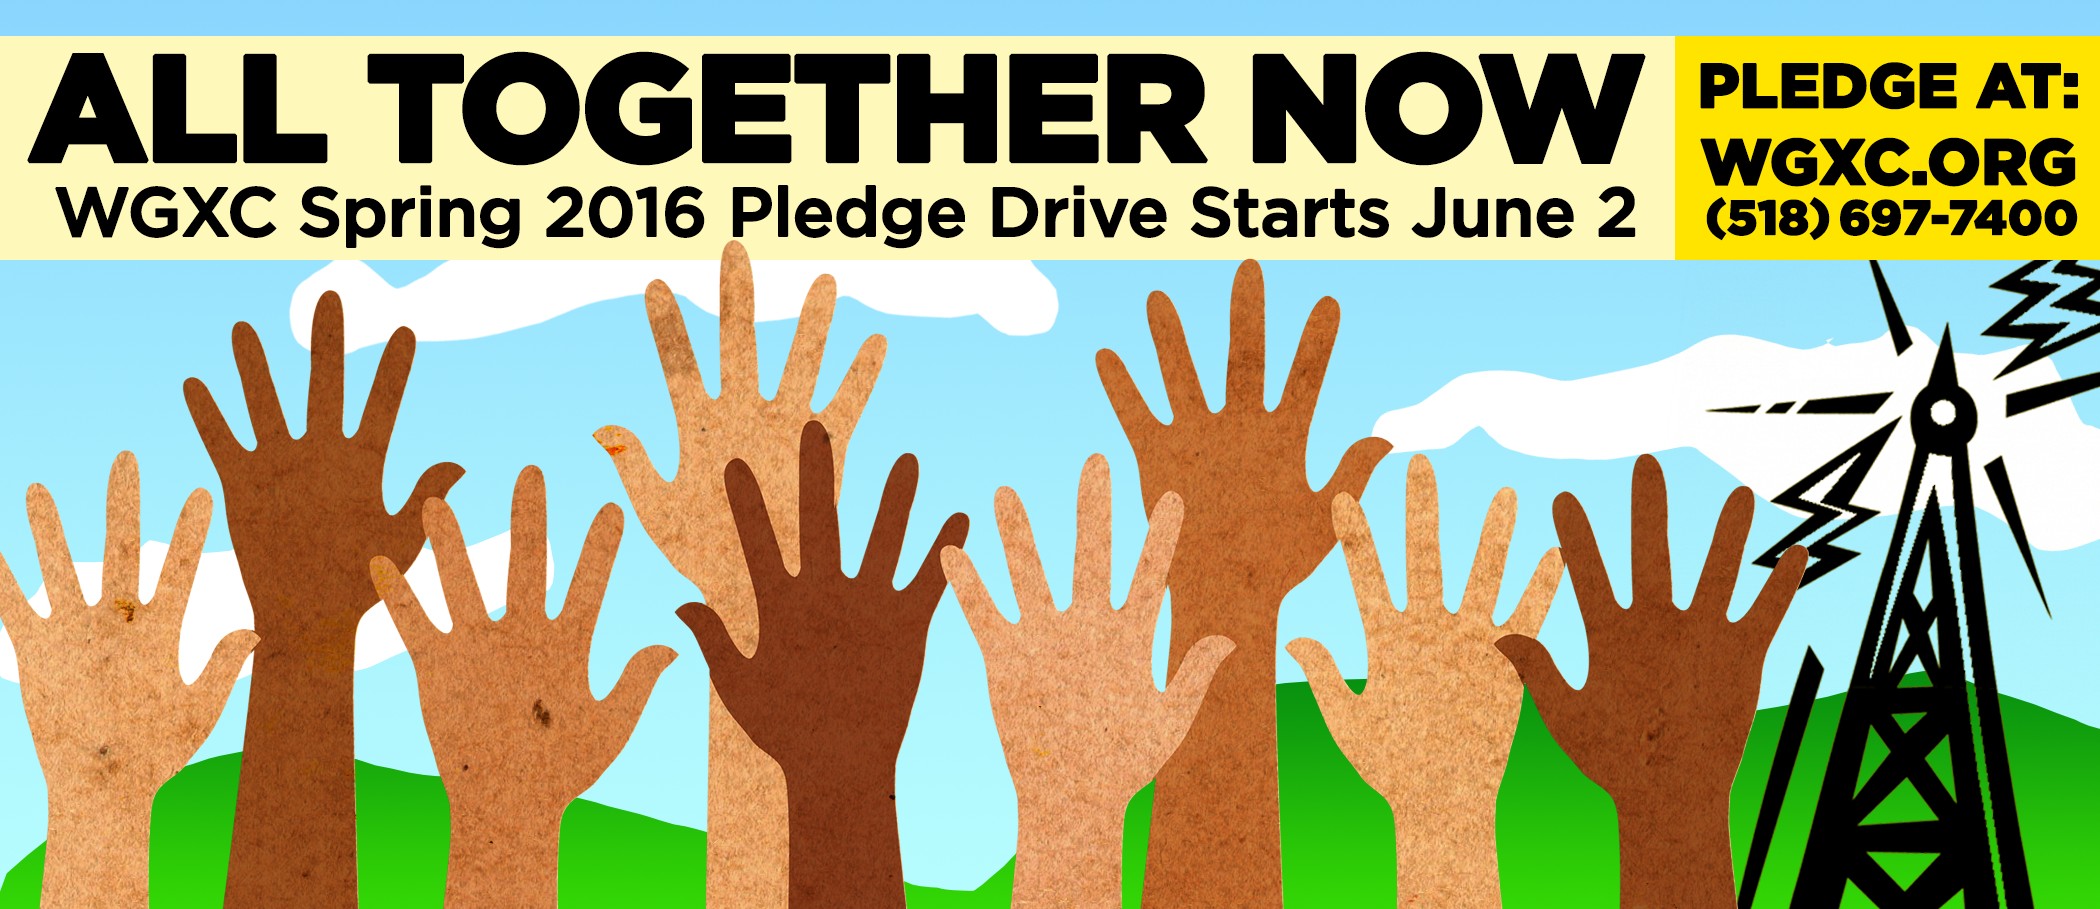 WGXC All Together Now! Spring Pledge Drive Banner Image